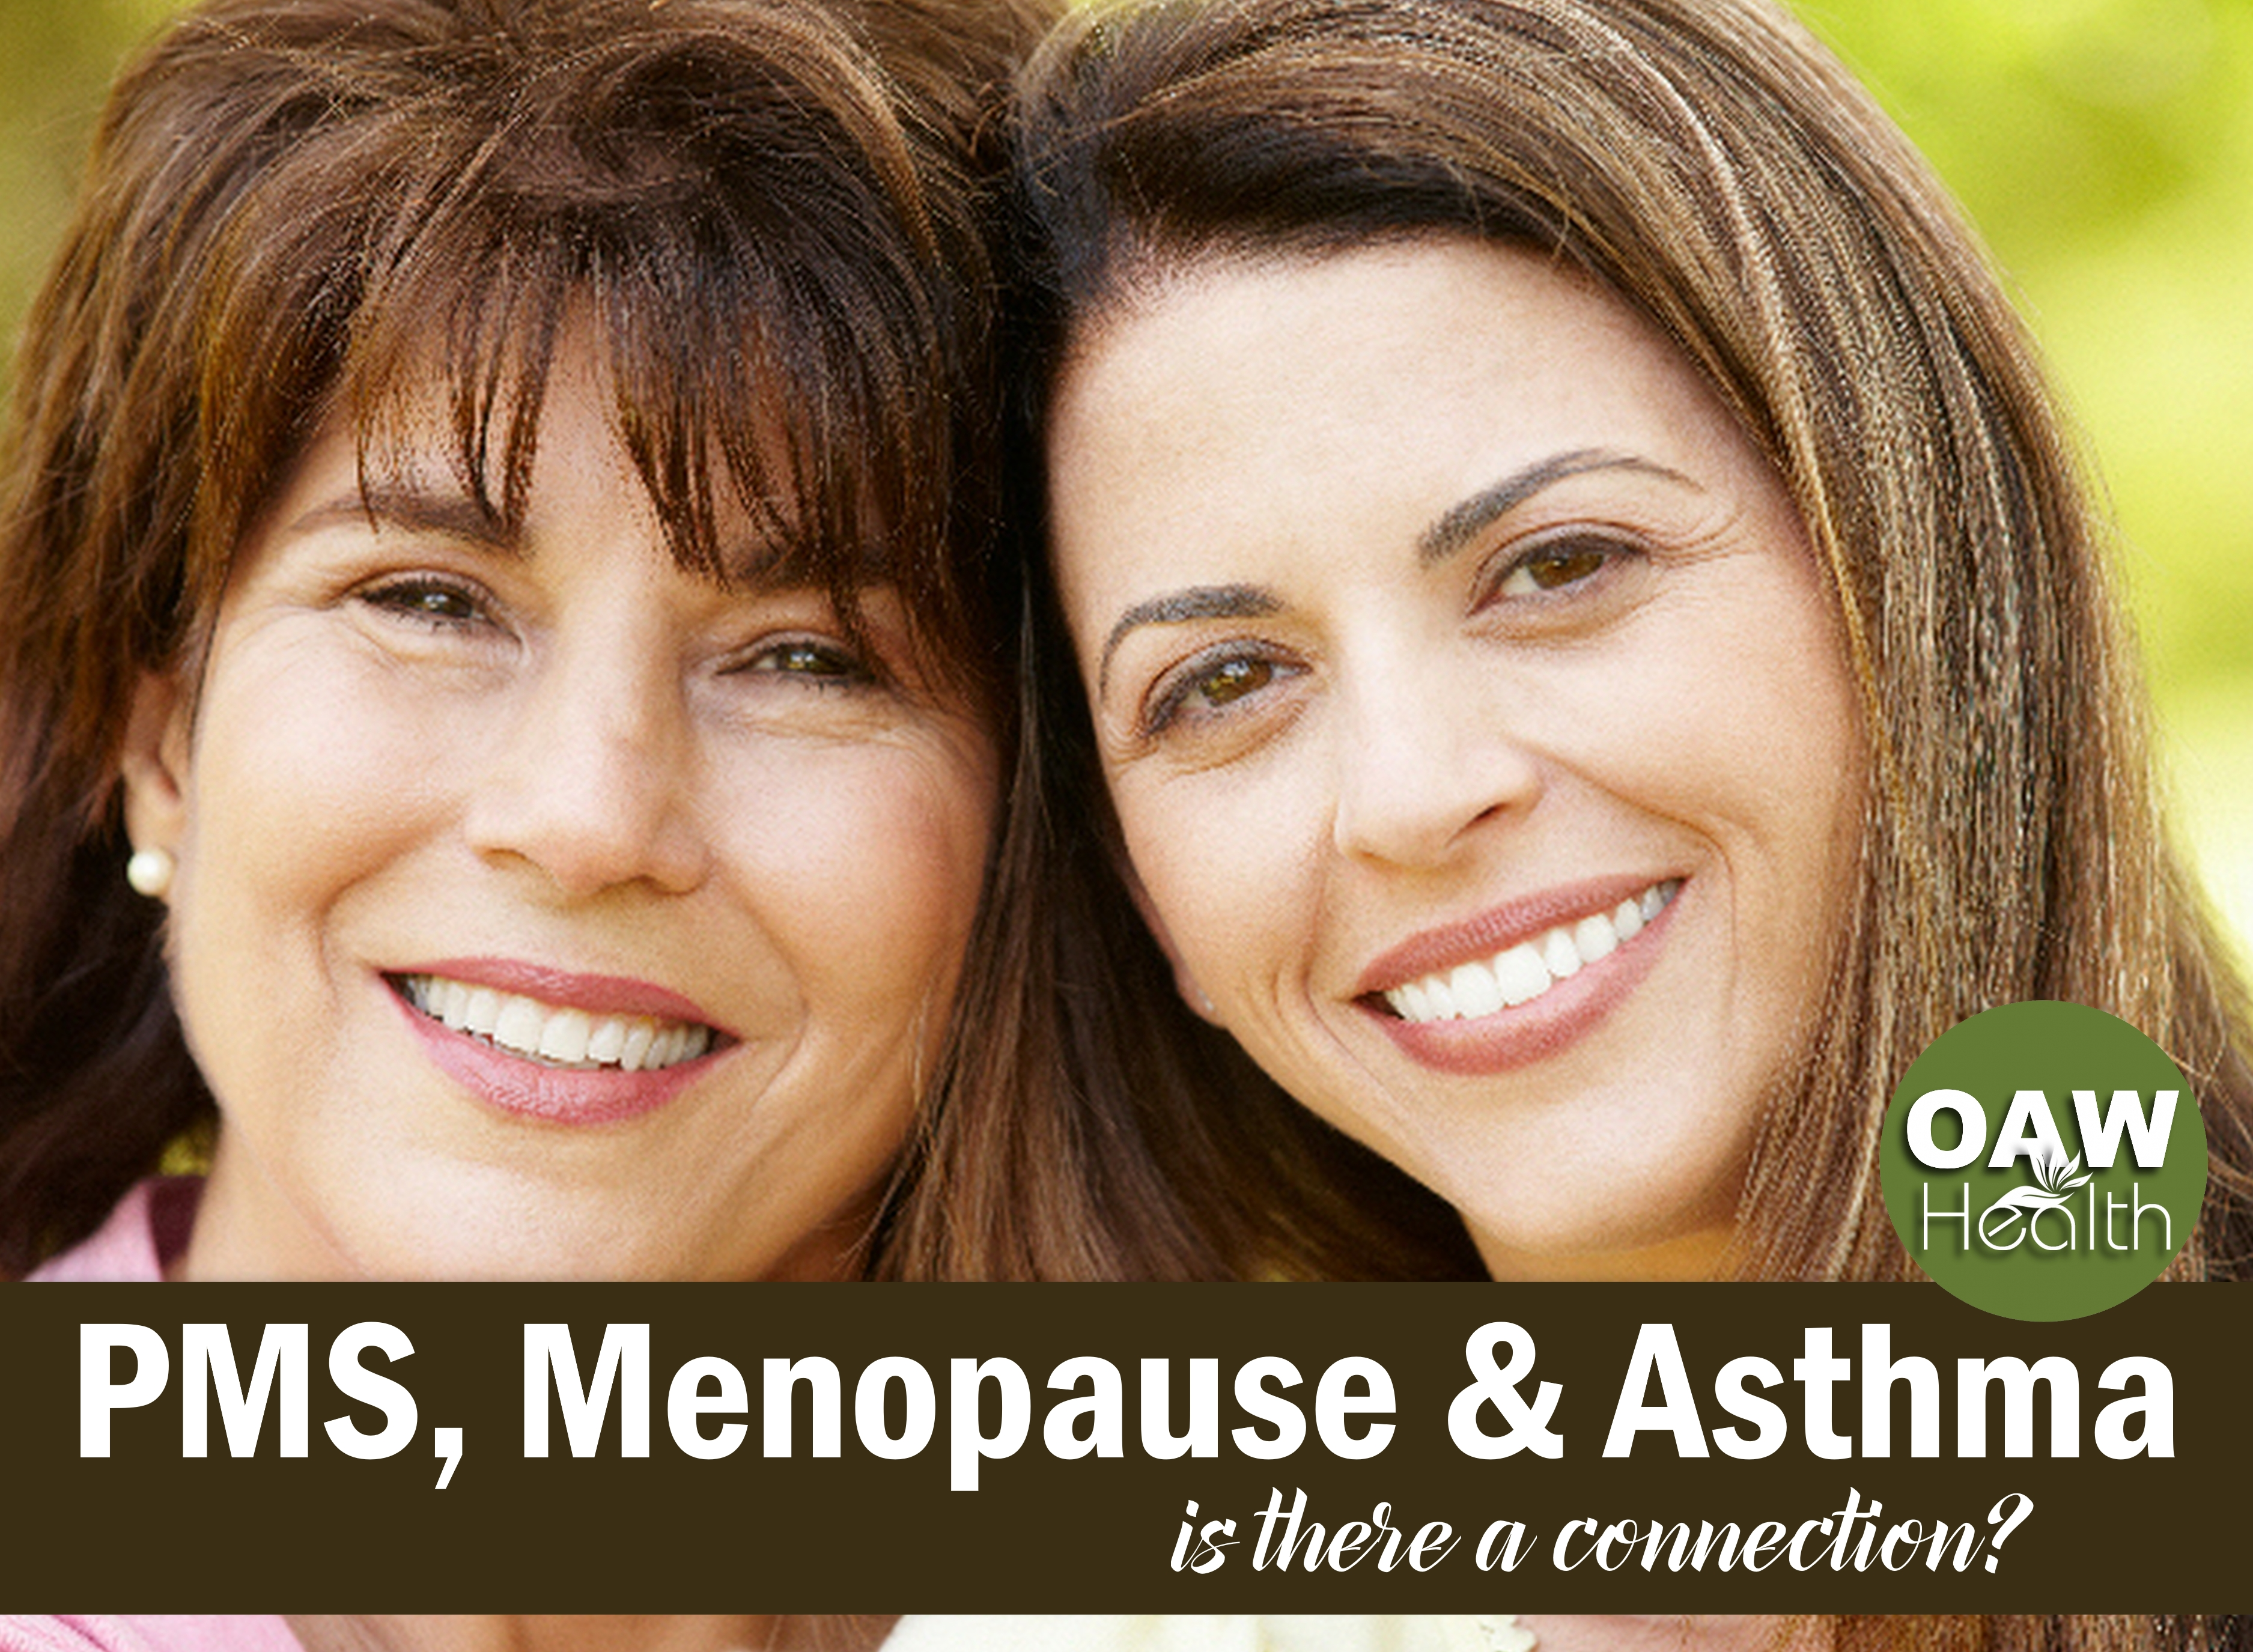 PMS, Menopause and Asthma: Is There A Connection?